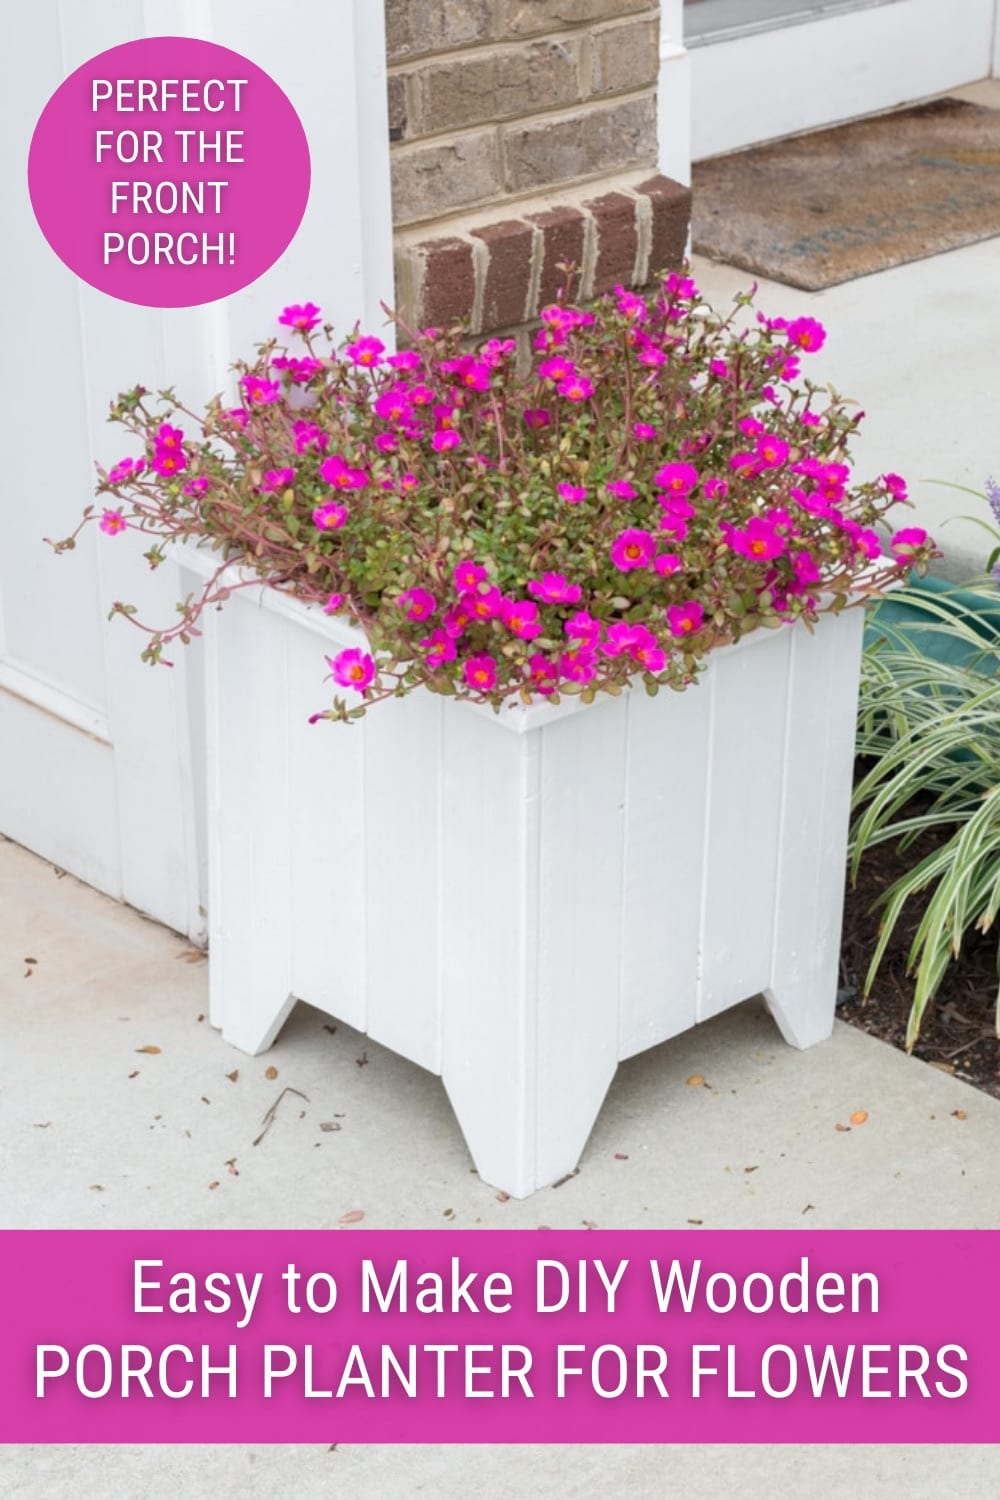 wooden porch planter box with pink flowers and text Easy to make DIY wooden Porch Planter for flowers